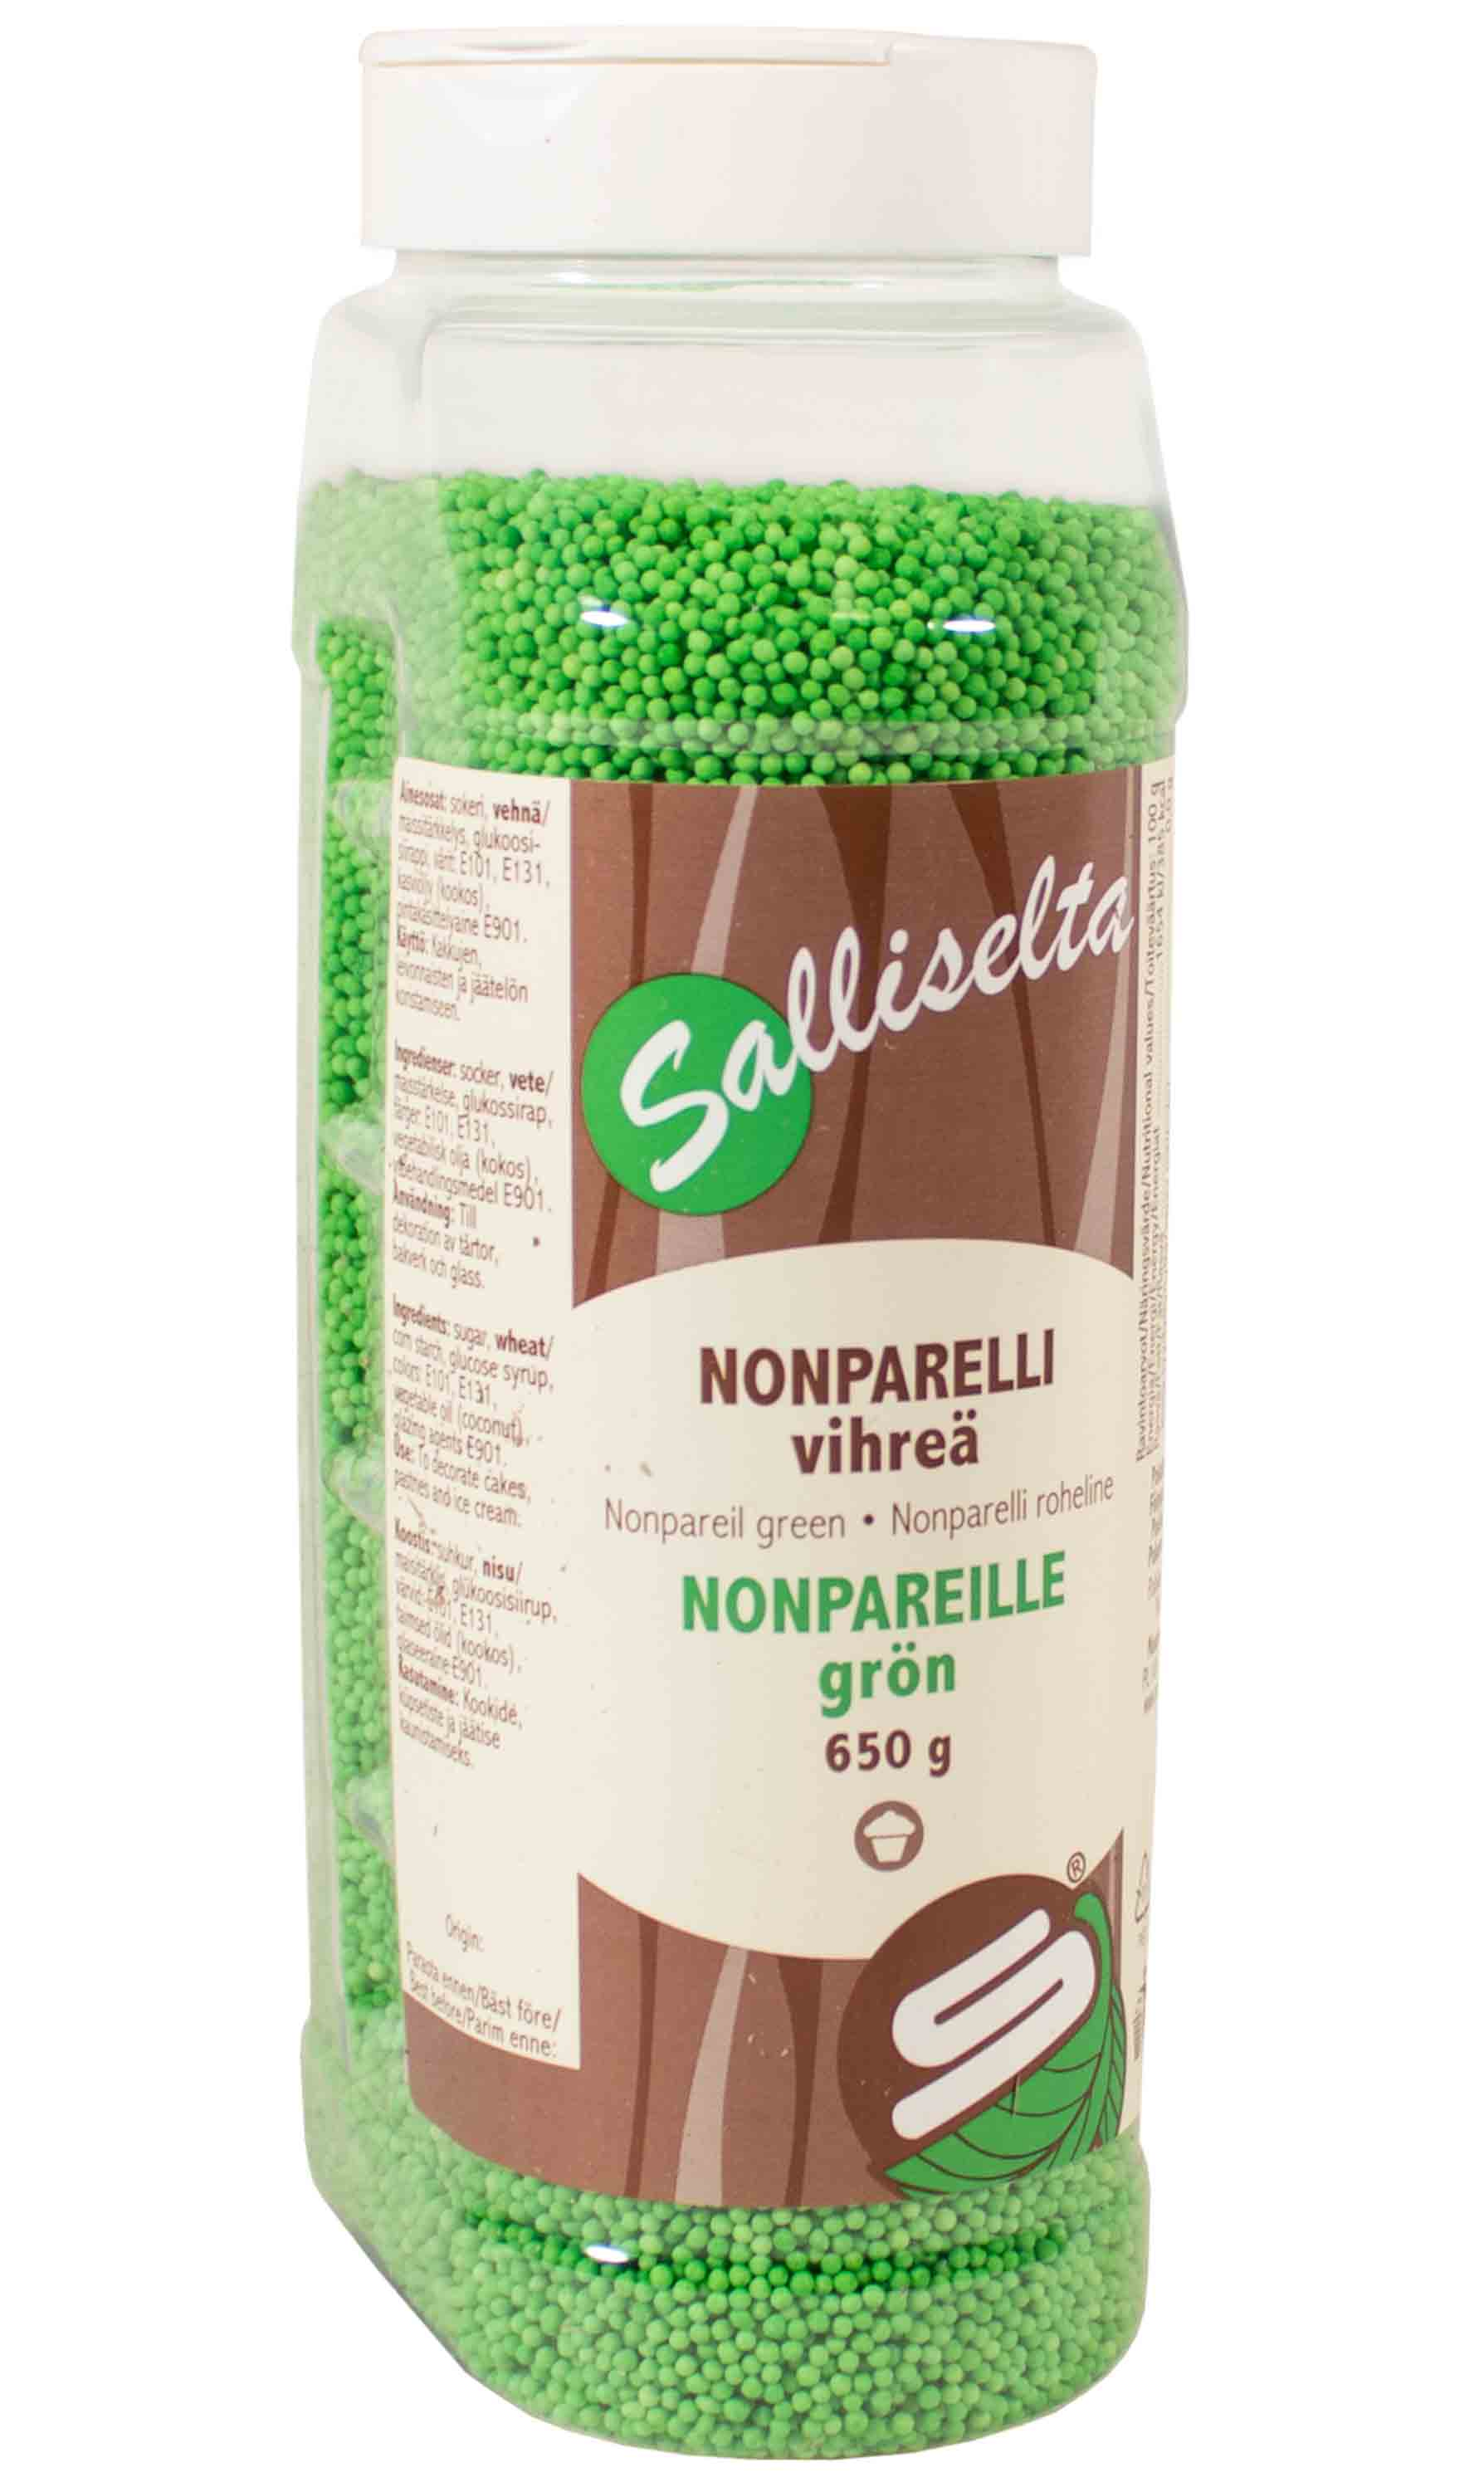 Nonpareils green 650 g